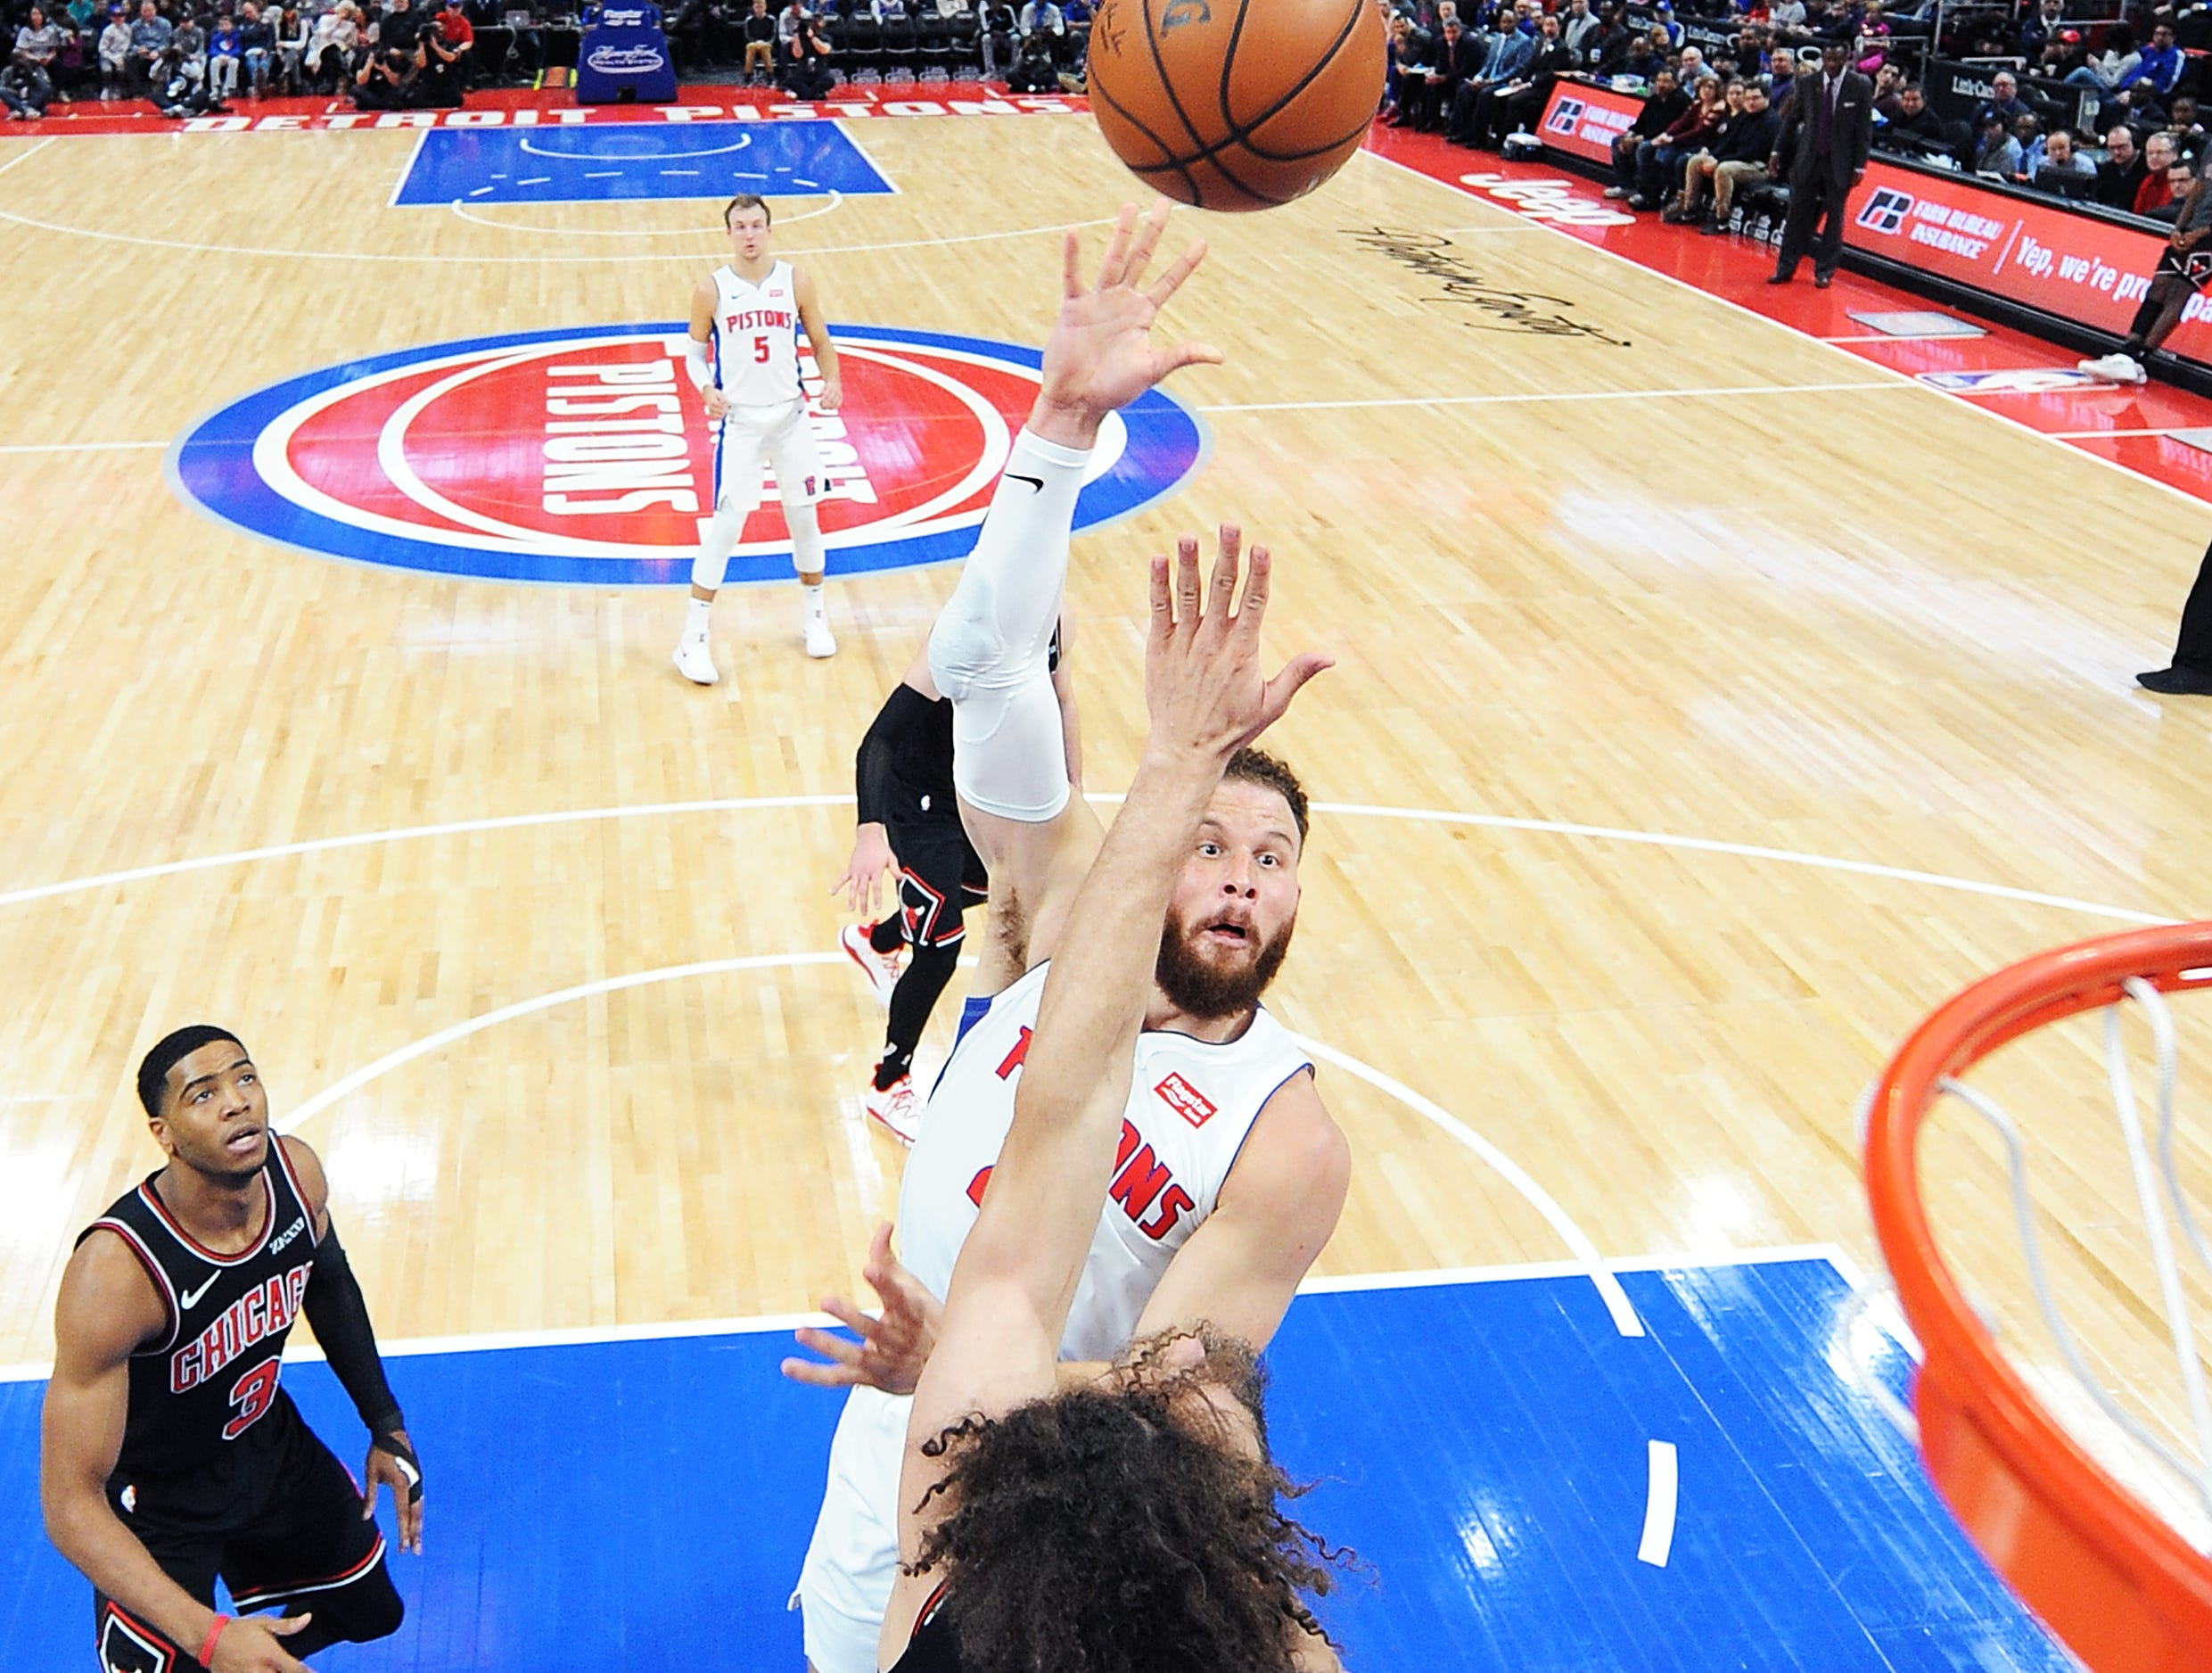 Pistons' Blake Griffin scores over Bulls' Robin Lopez in the second quarter. Griffin had 28 points and 6 rebounds.